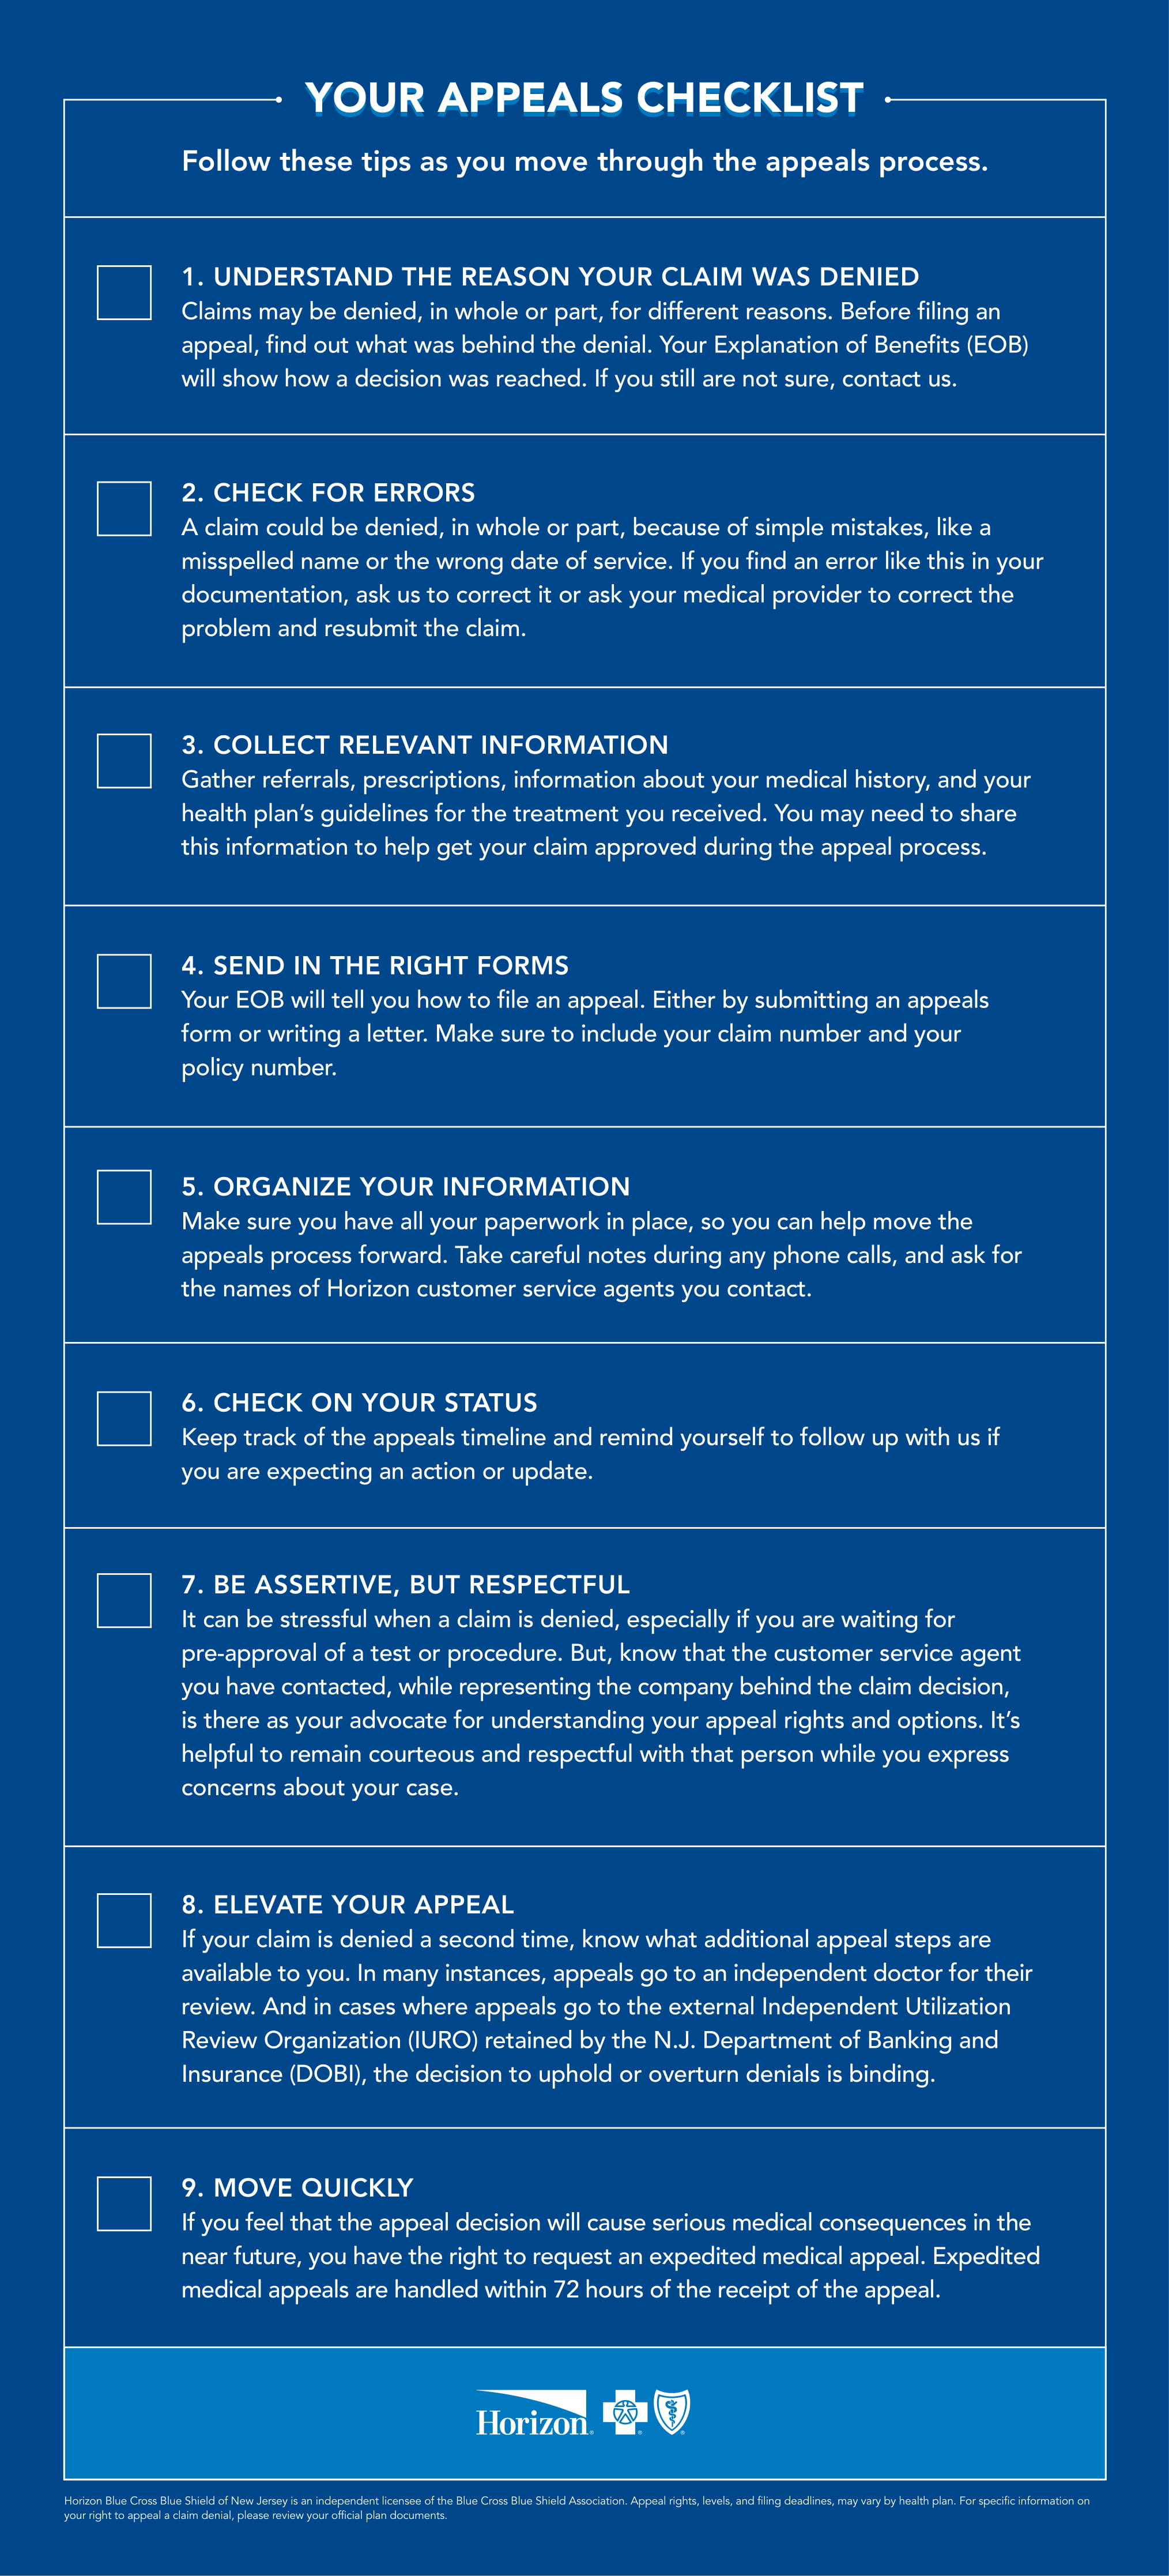 Your Appeals Checklist